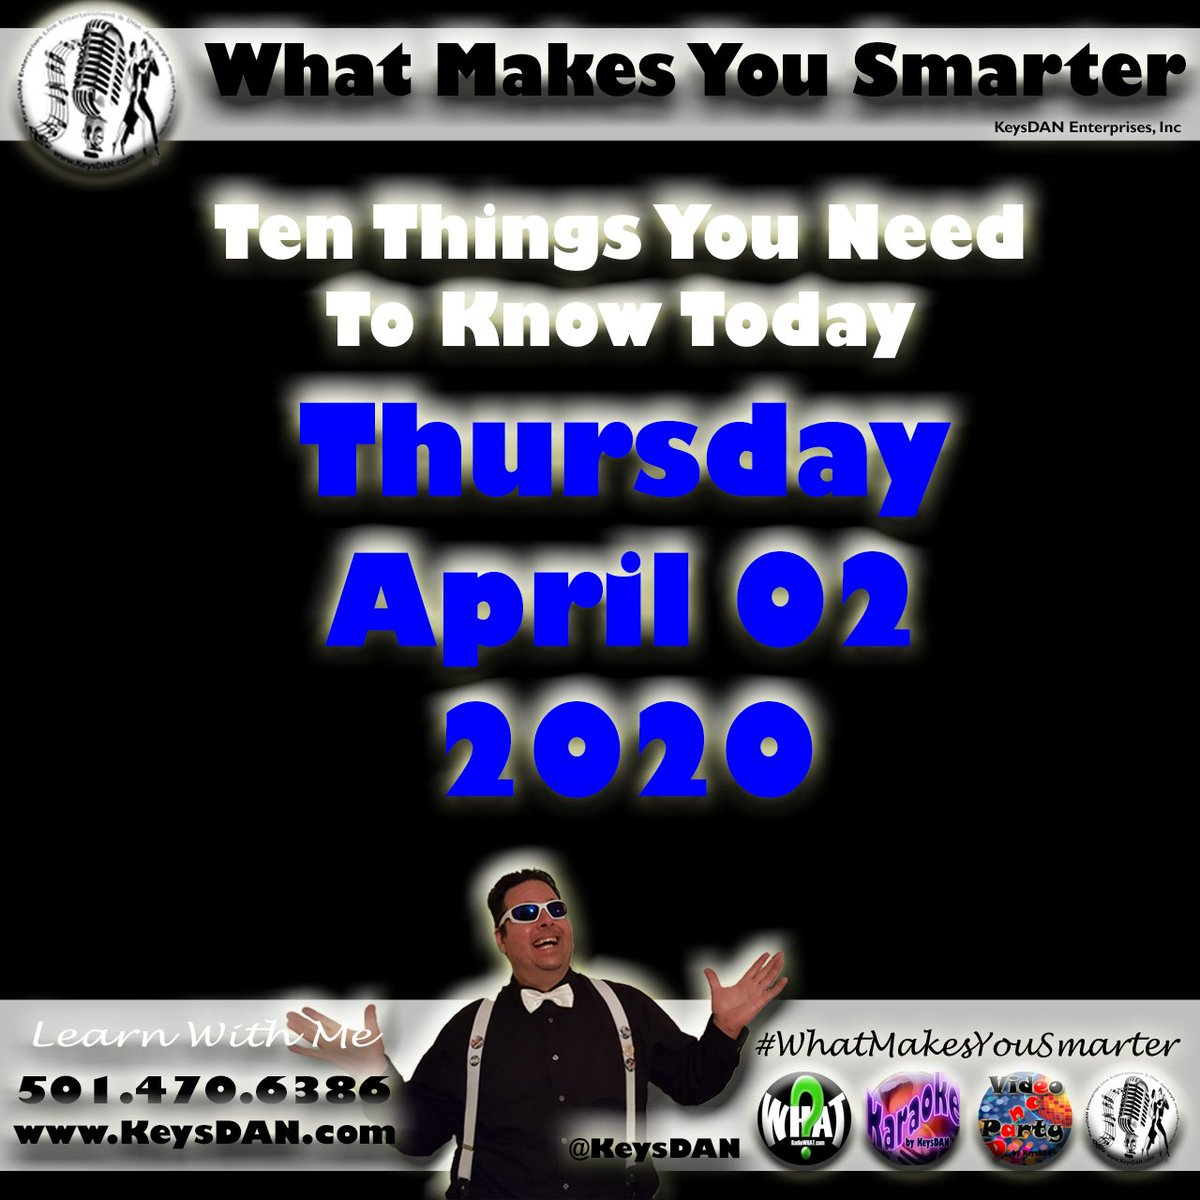 2020-04-02 Ten Things You Need To Know Today What Makes You Smarter #PODCAST #WhatMakesYouSmarter @KeysDAN https://anchor.fm/whatmakesyousmarter/episodes/2020-04-02-Ten-Things-You-Need-To-Know-Today-What-Makes-You-Smarter-PODCAST-WhatMakesYouSmarter-KeysDAN-eca2jt… #podcastsdotcom #podcasts #podcast #podcasting #podcaster #PodernFamily #podcastlisten #podcastinglife #podcast#podcastlife pic.twitter.com/wKAe54r68Q